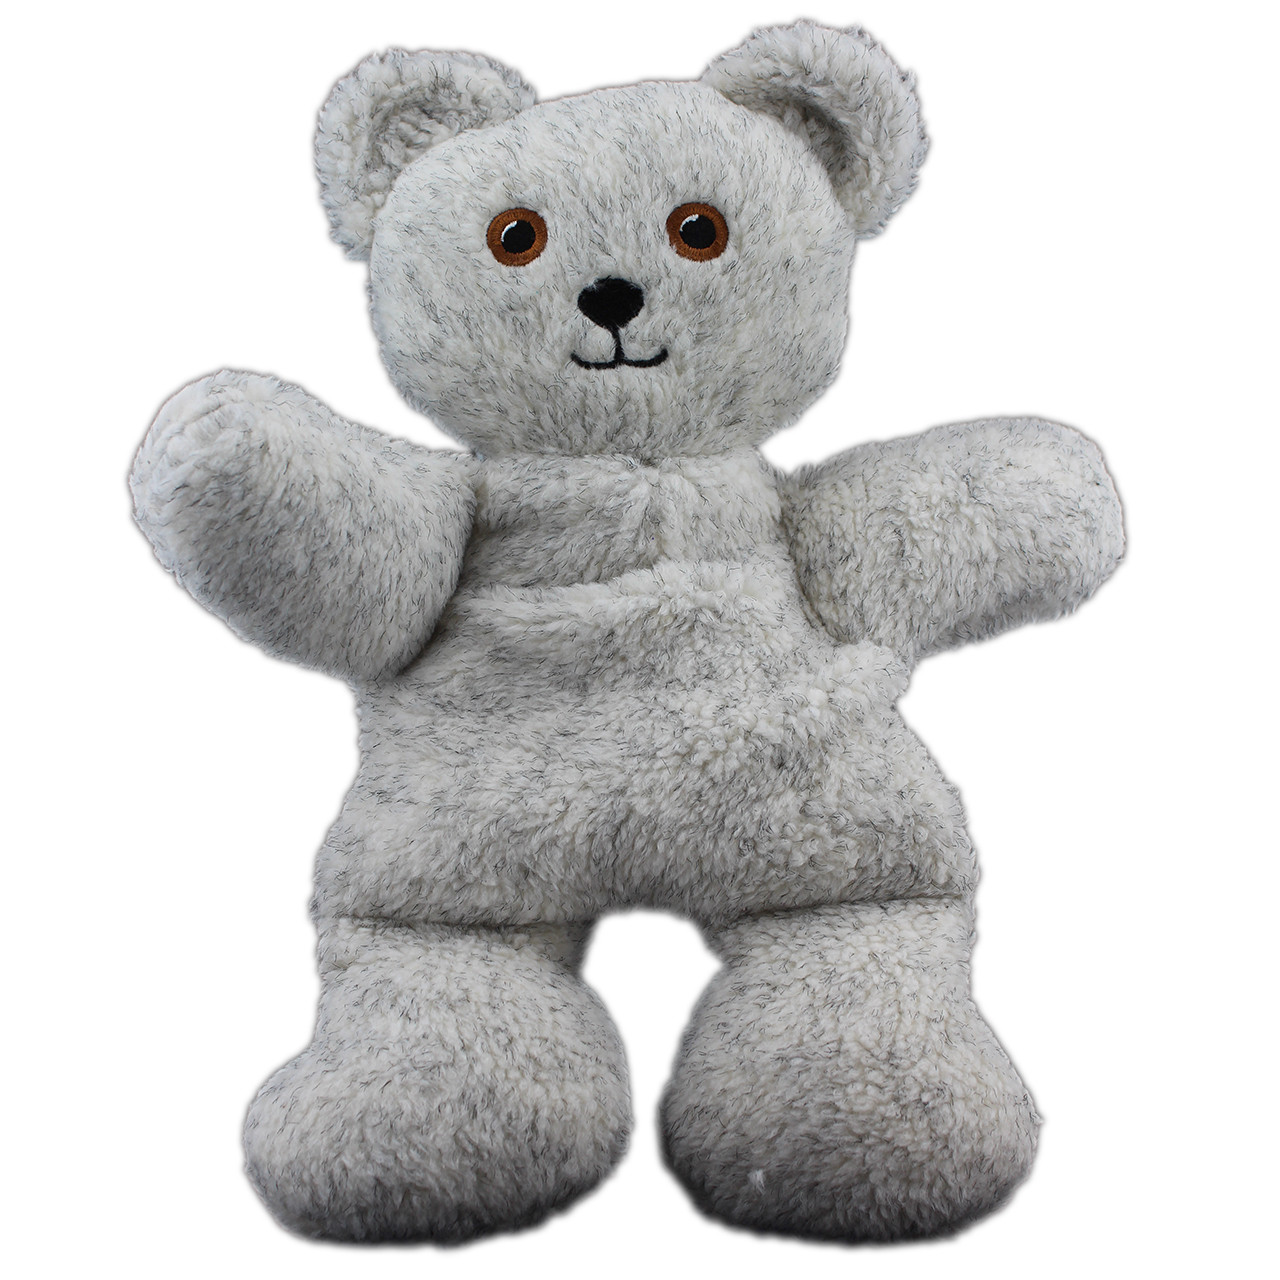 Microwavable Oatmeal Thera Bear Weighted Stuffed Animal